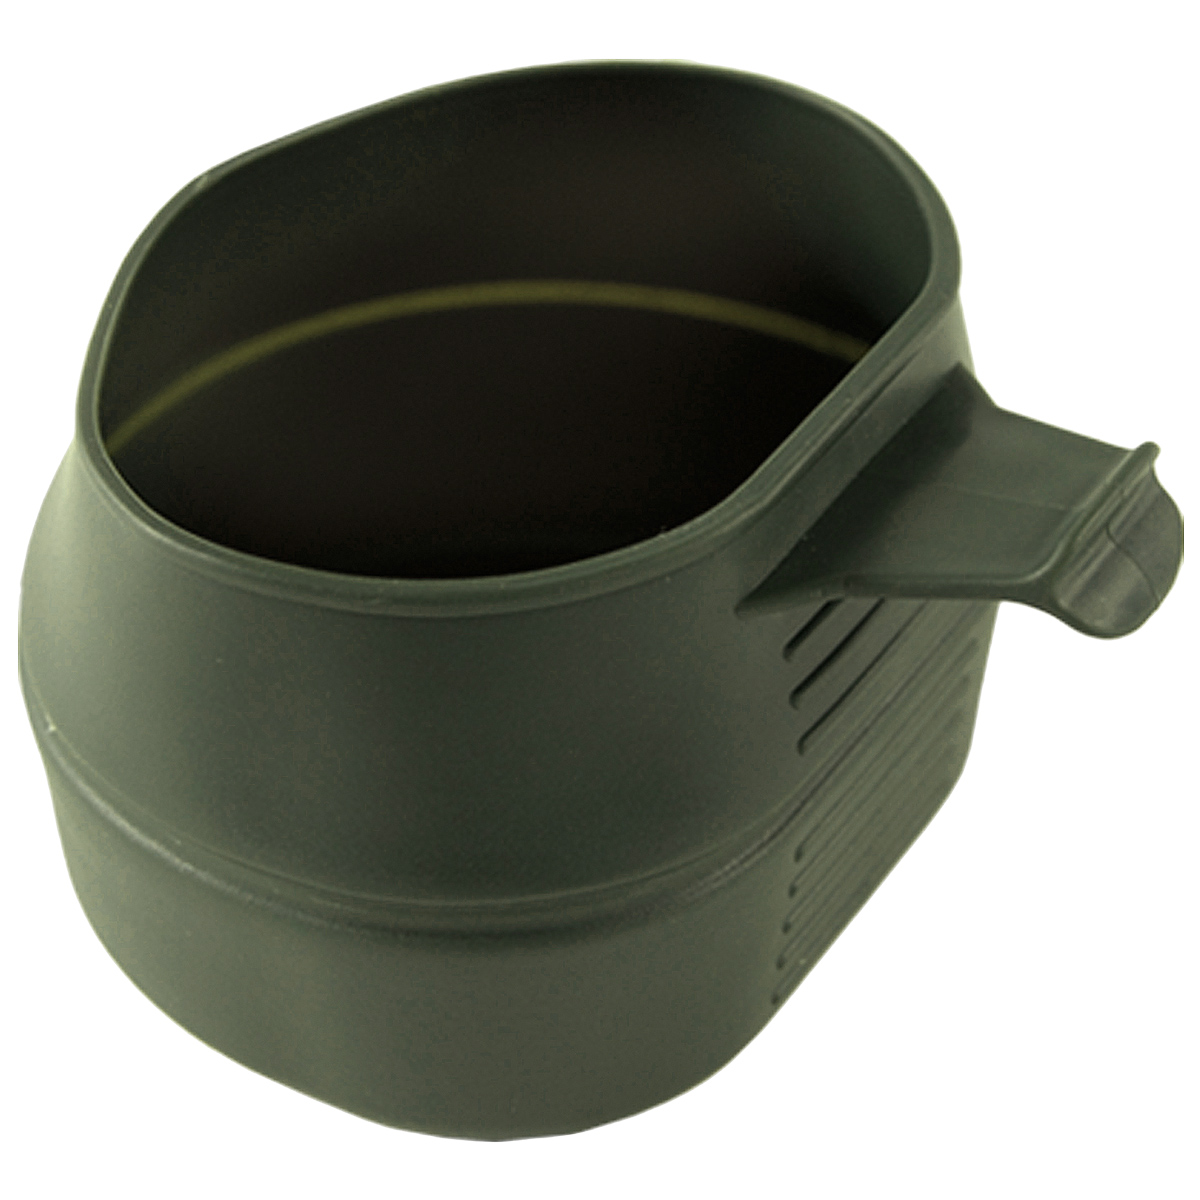 Swedish Army Folding Cup Camping Hiking Survival Folda ...